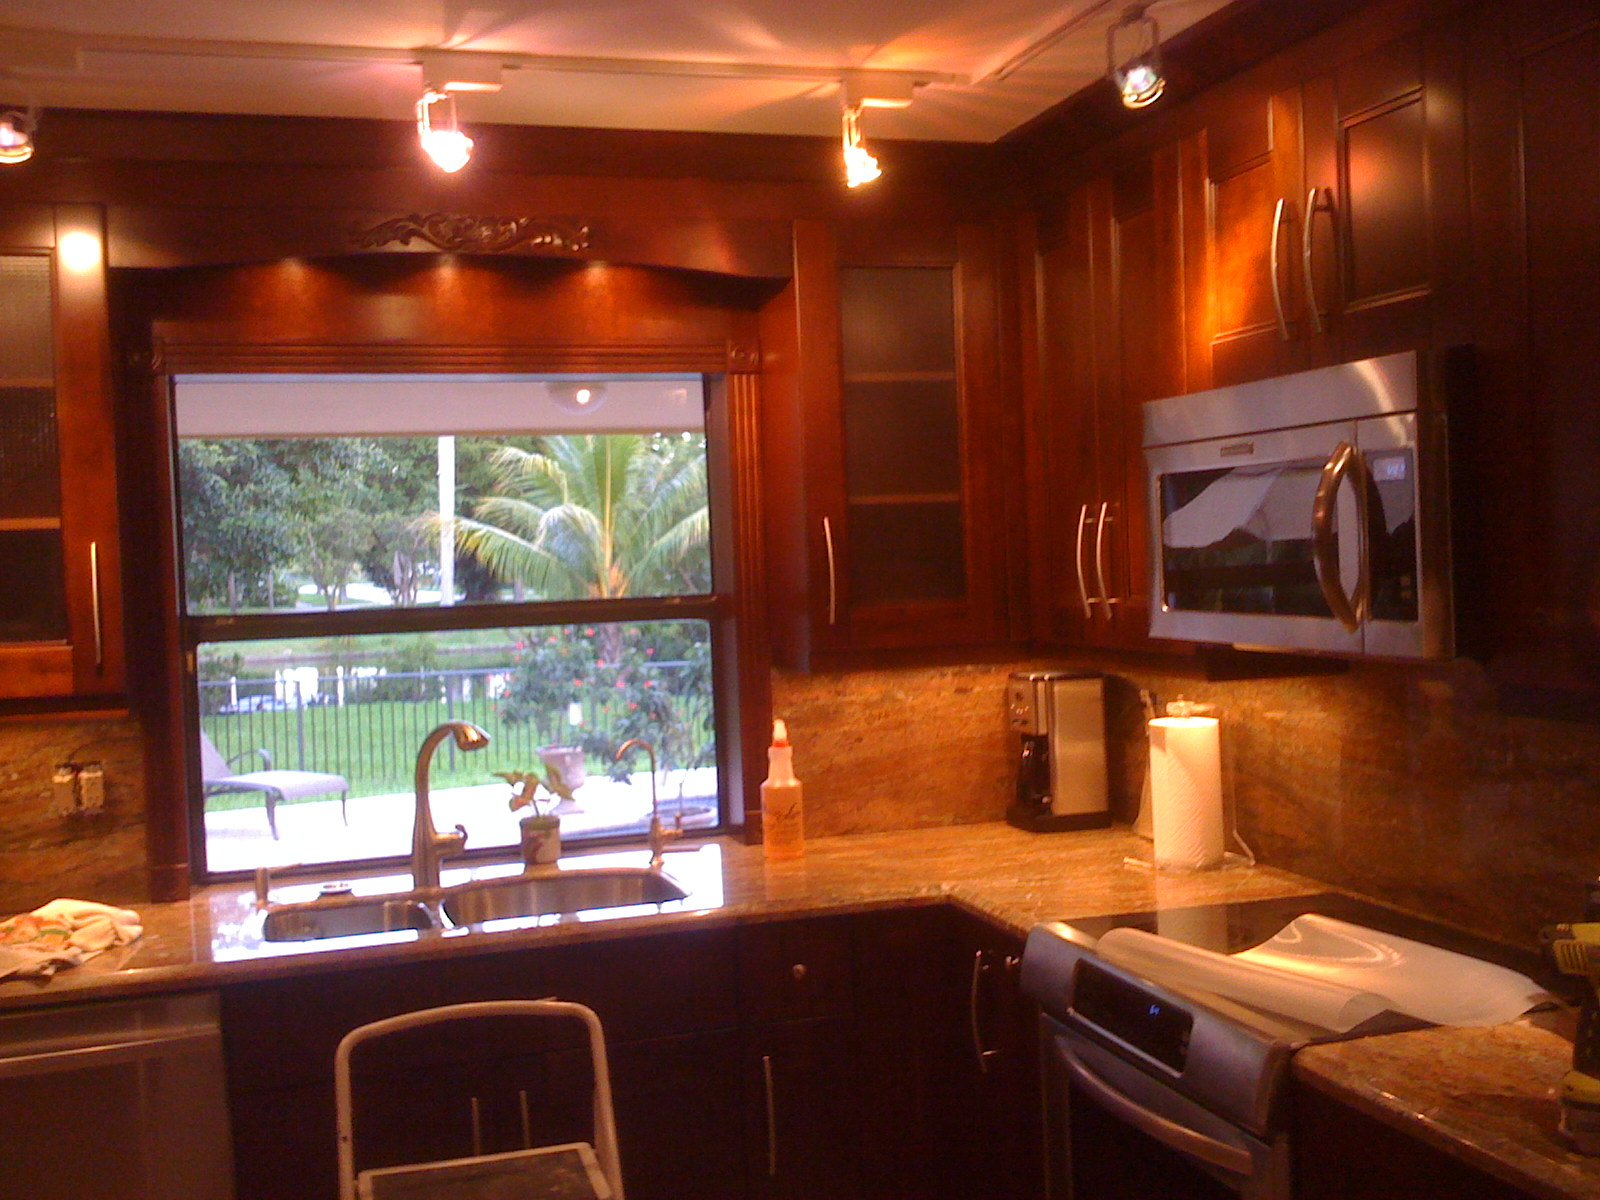 Triangle Island Kitchen Gallery - Kitchen Cabinets And Granite Countertops